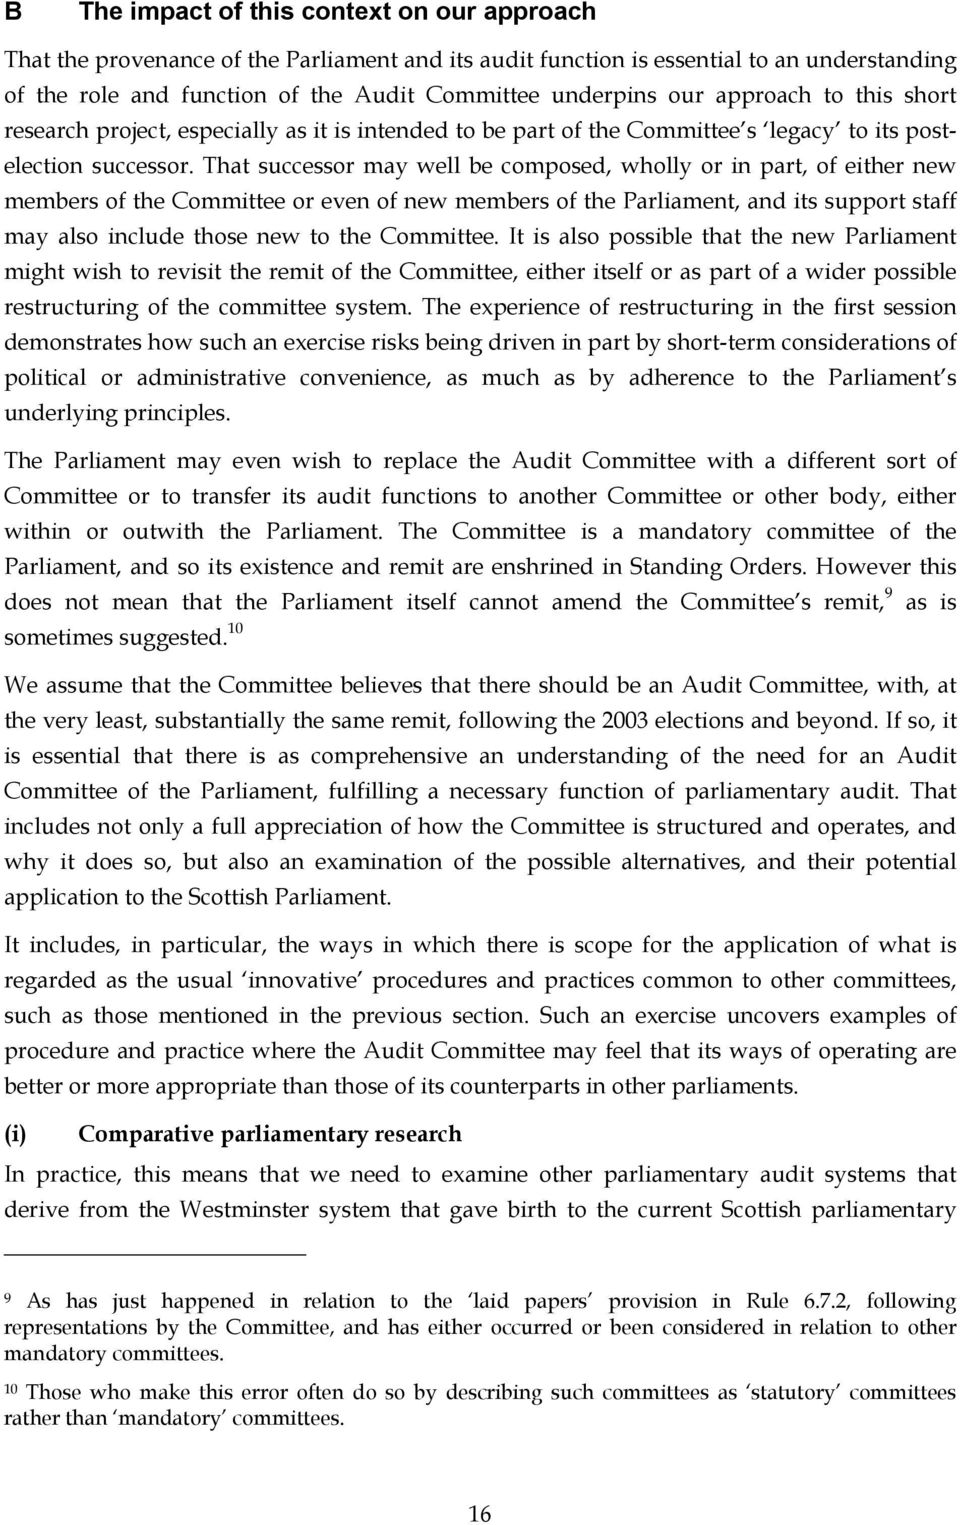 That successor may well be composed, wholly or in part, of either new members of the Committee or even of new members of the Parliament, and its support staff may also include those new to the